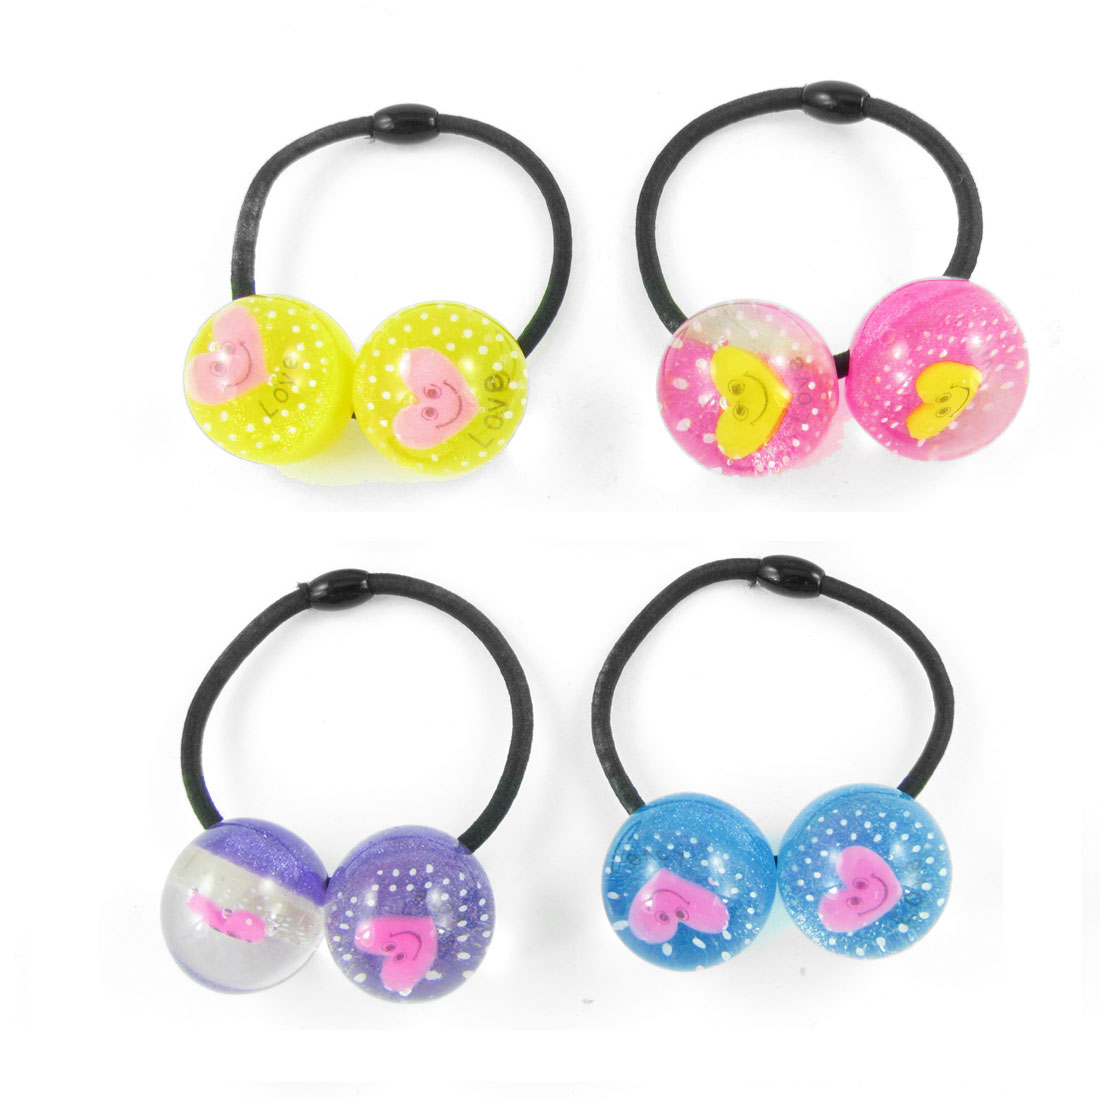 4pcs Girls Plastic Heart Smile Face Inlaid Beads Decor Elastic Hair Band Tie